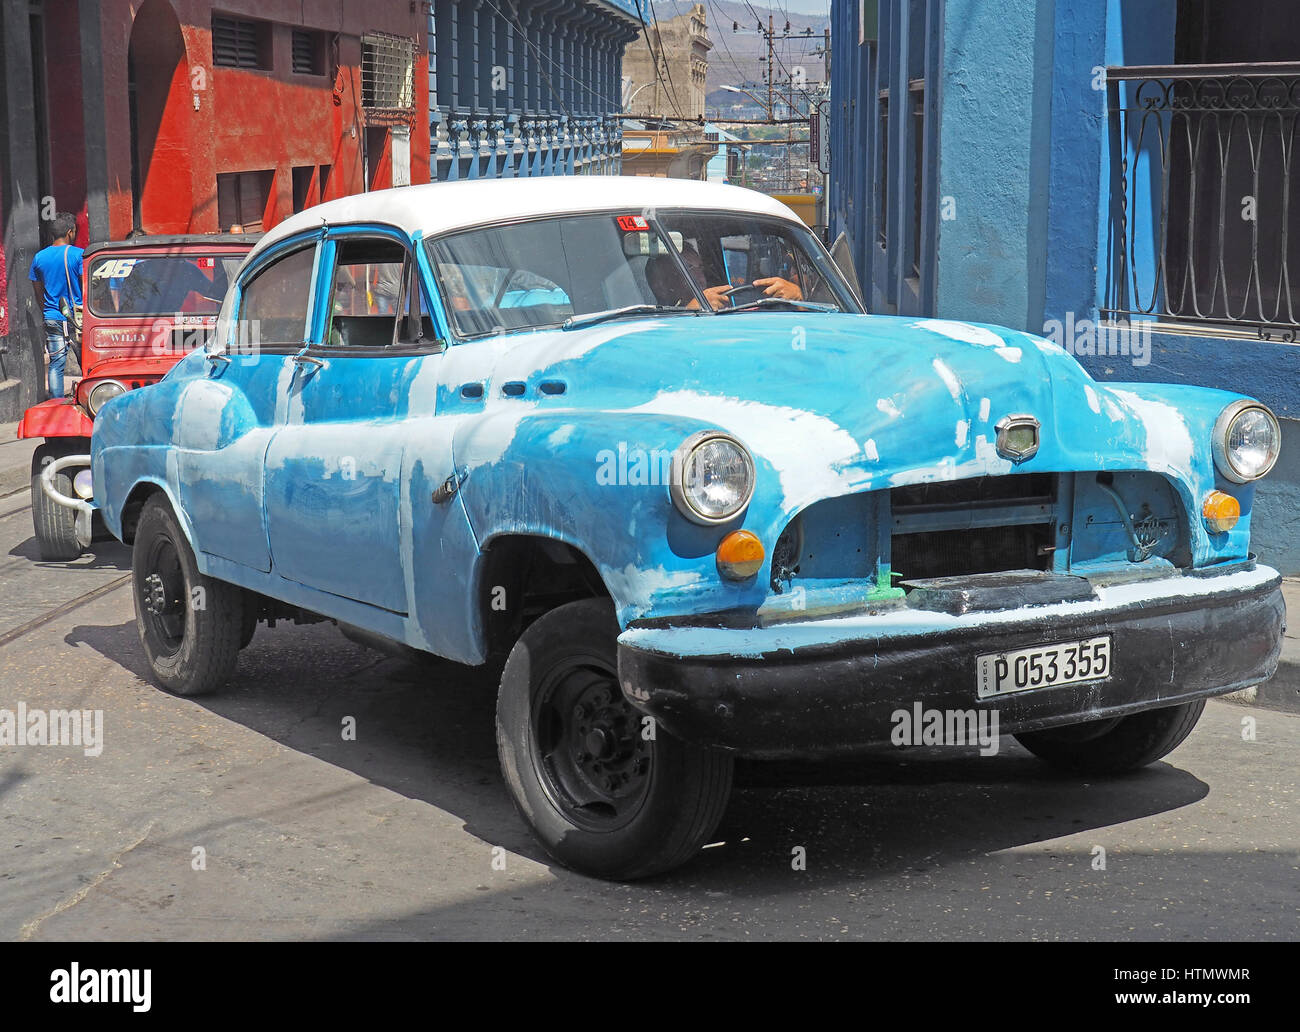 Unrestaurierten amerikanisches Auto in Santiago De Cuba. Stockbild